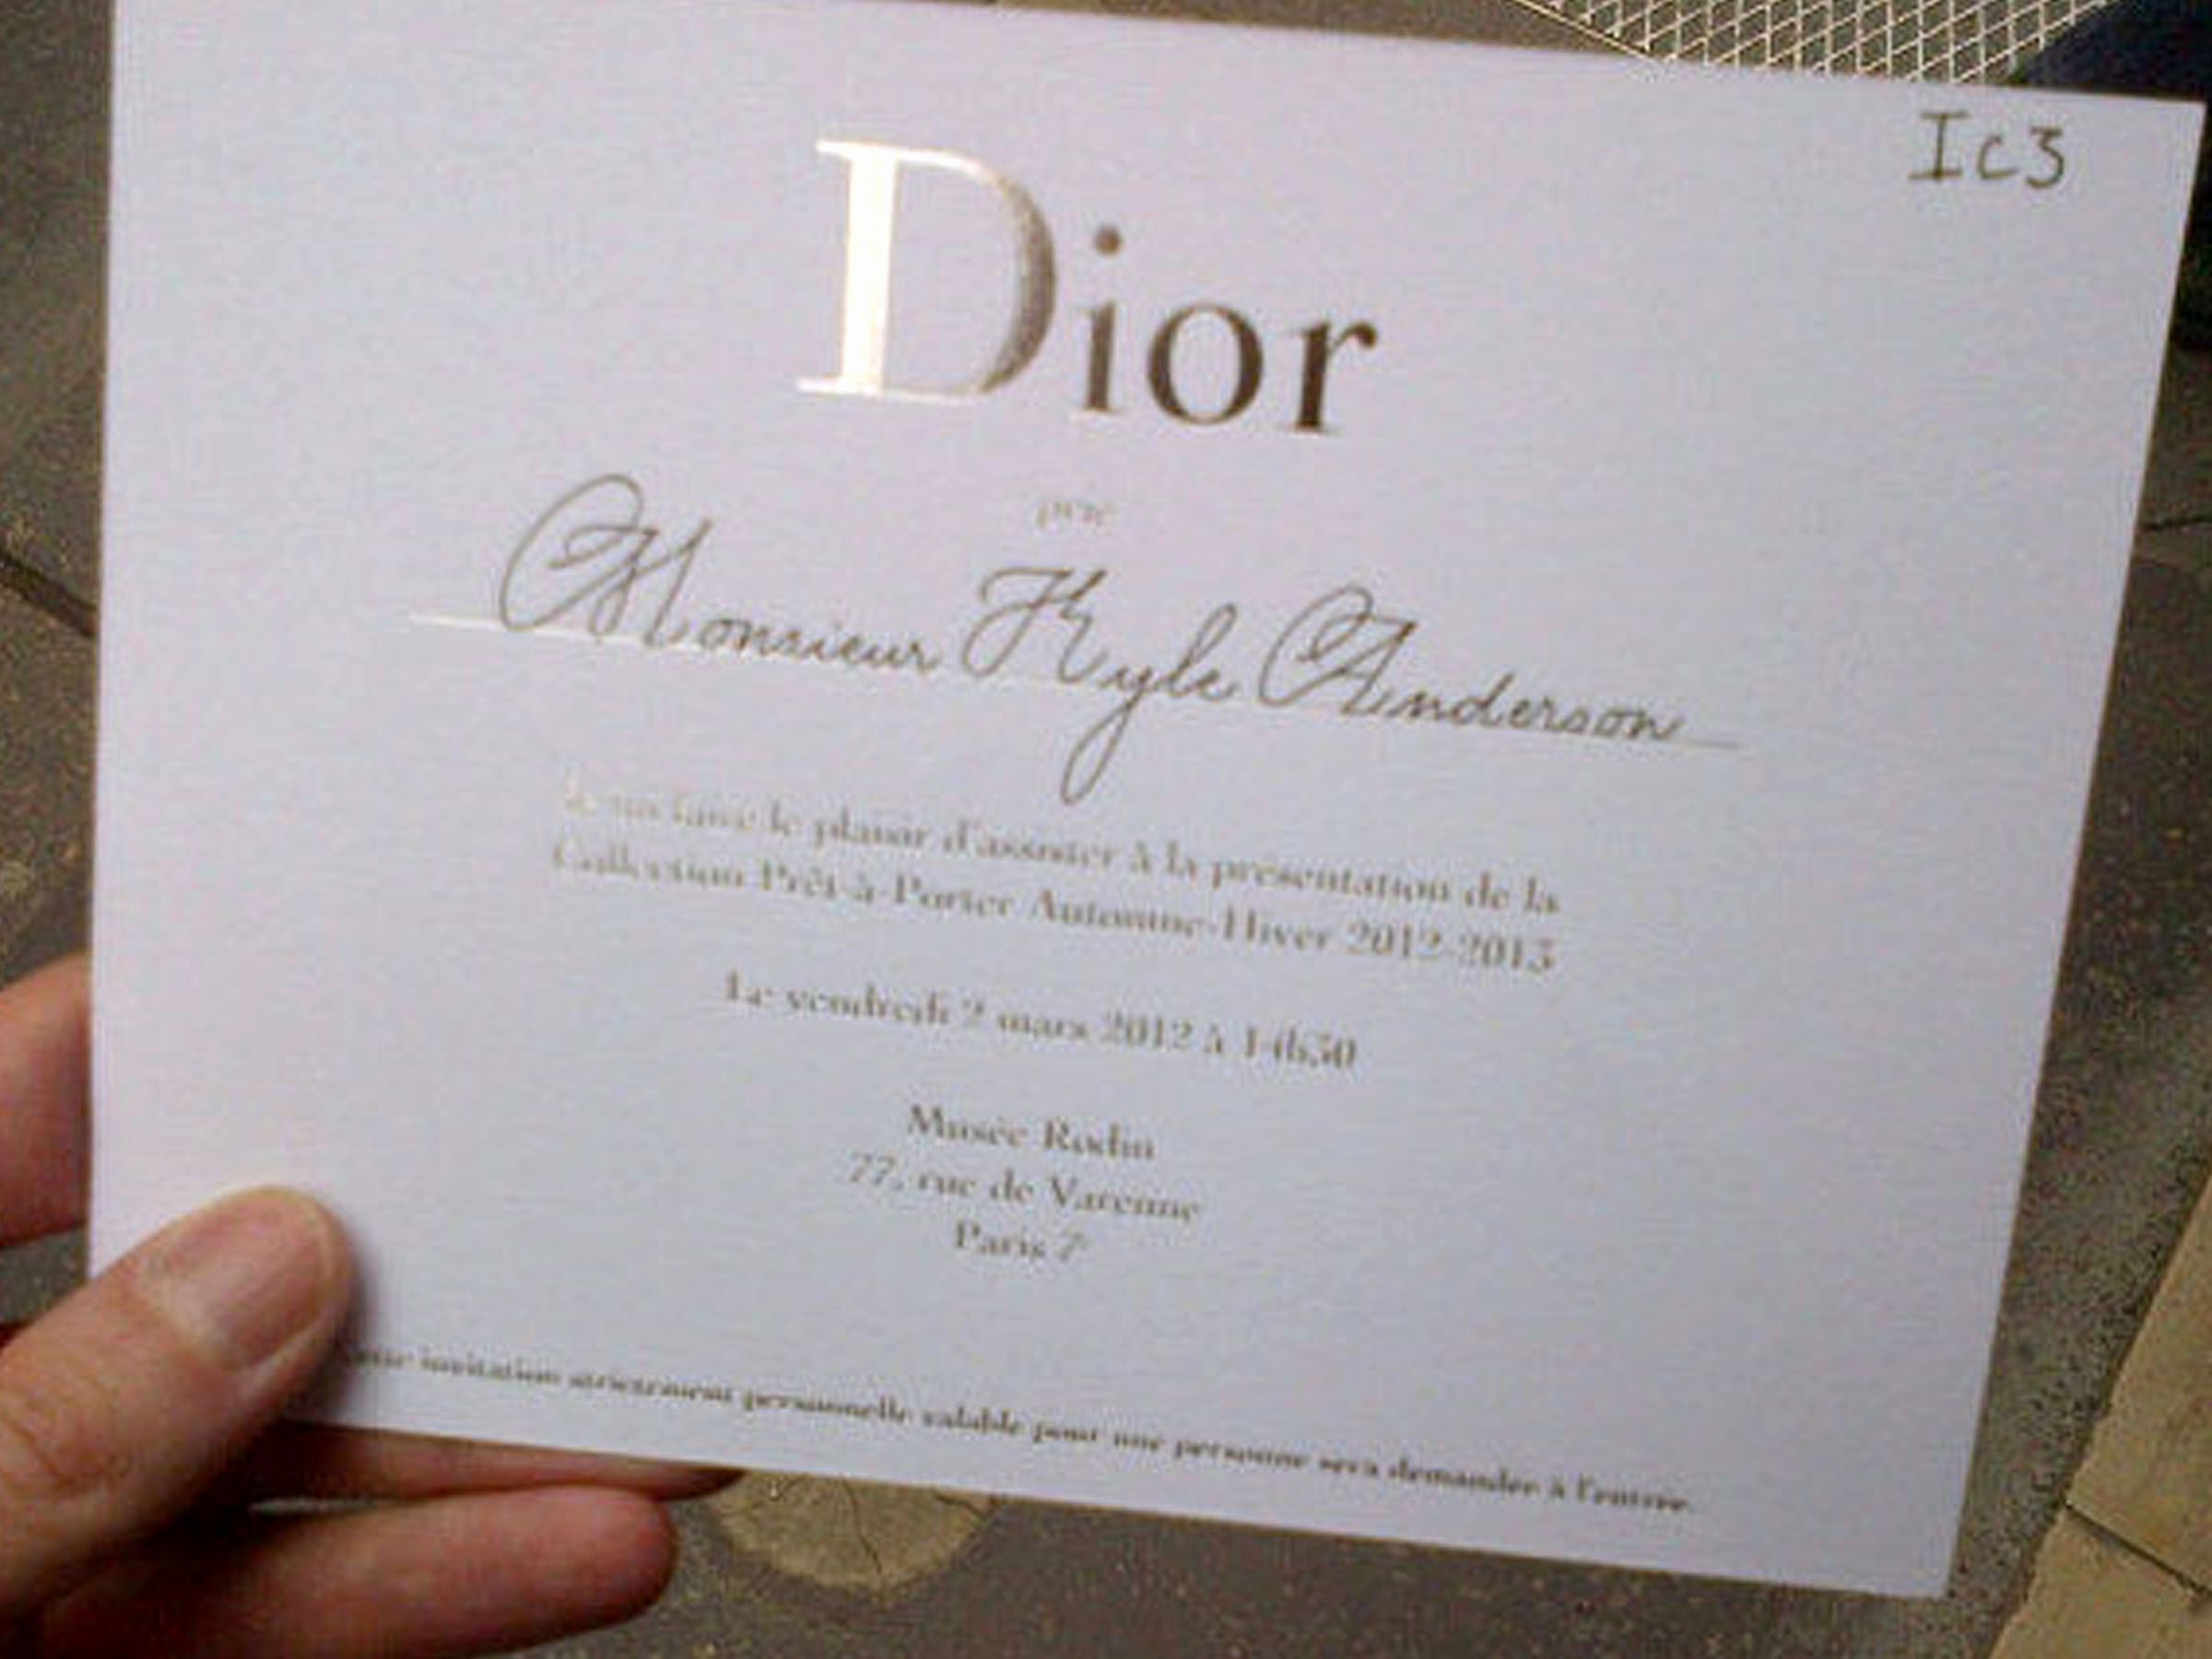 Fashion Show Invitation Template Elegant This Dior Fashion Show Ticket is A Classic Example for